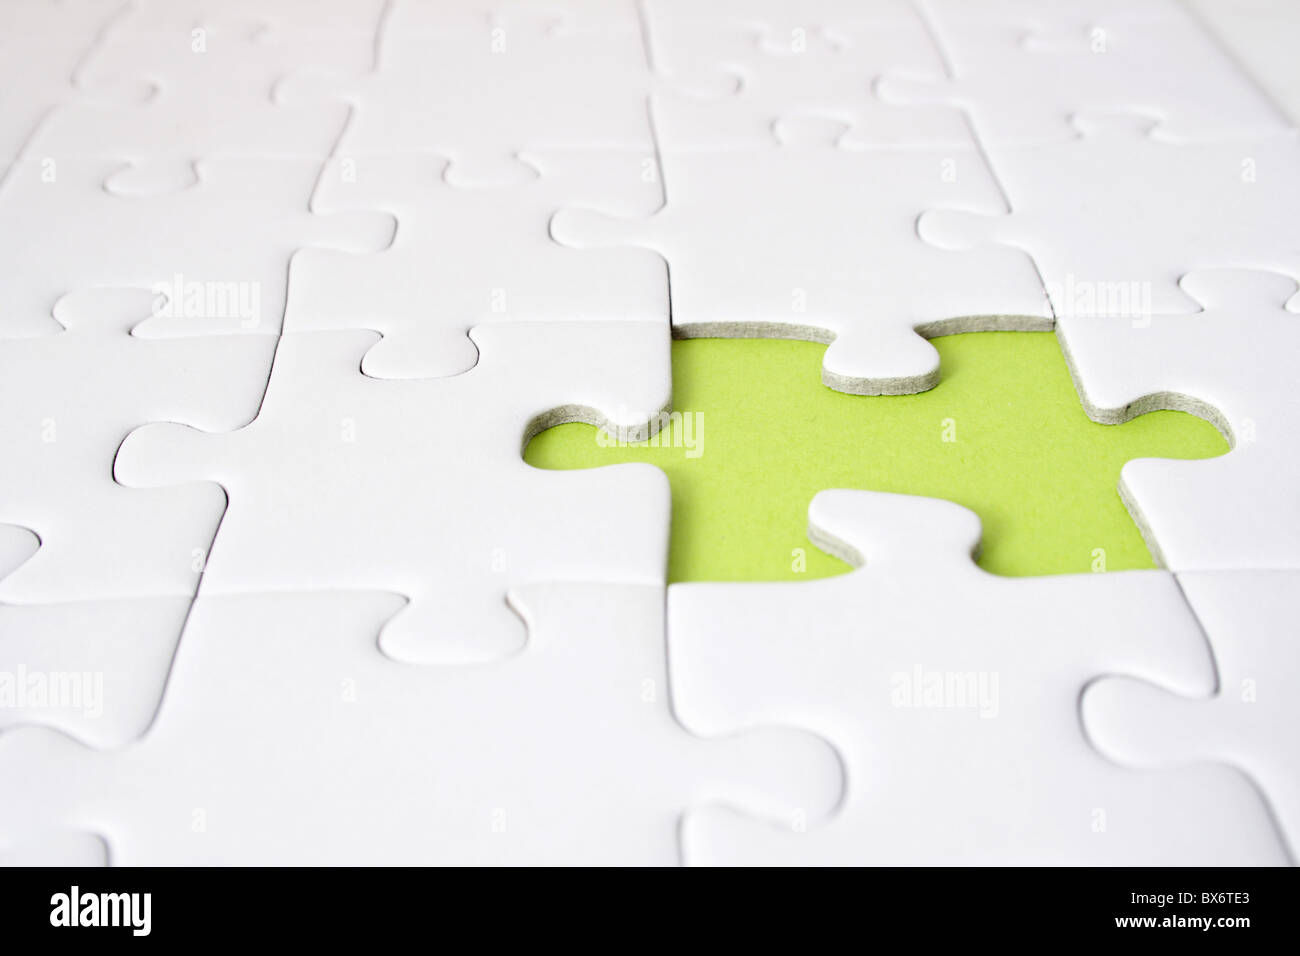 A single green gap in a plain white puzzle game. - Stock Image